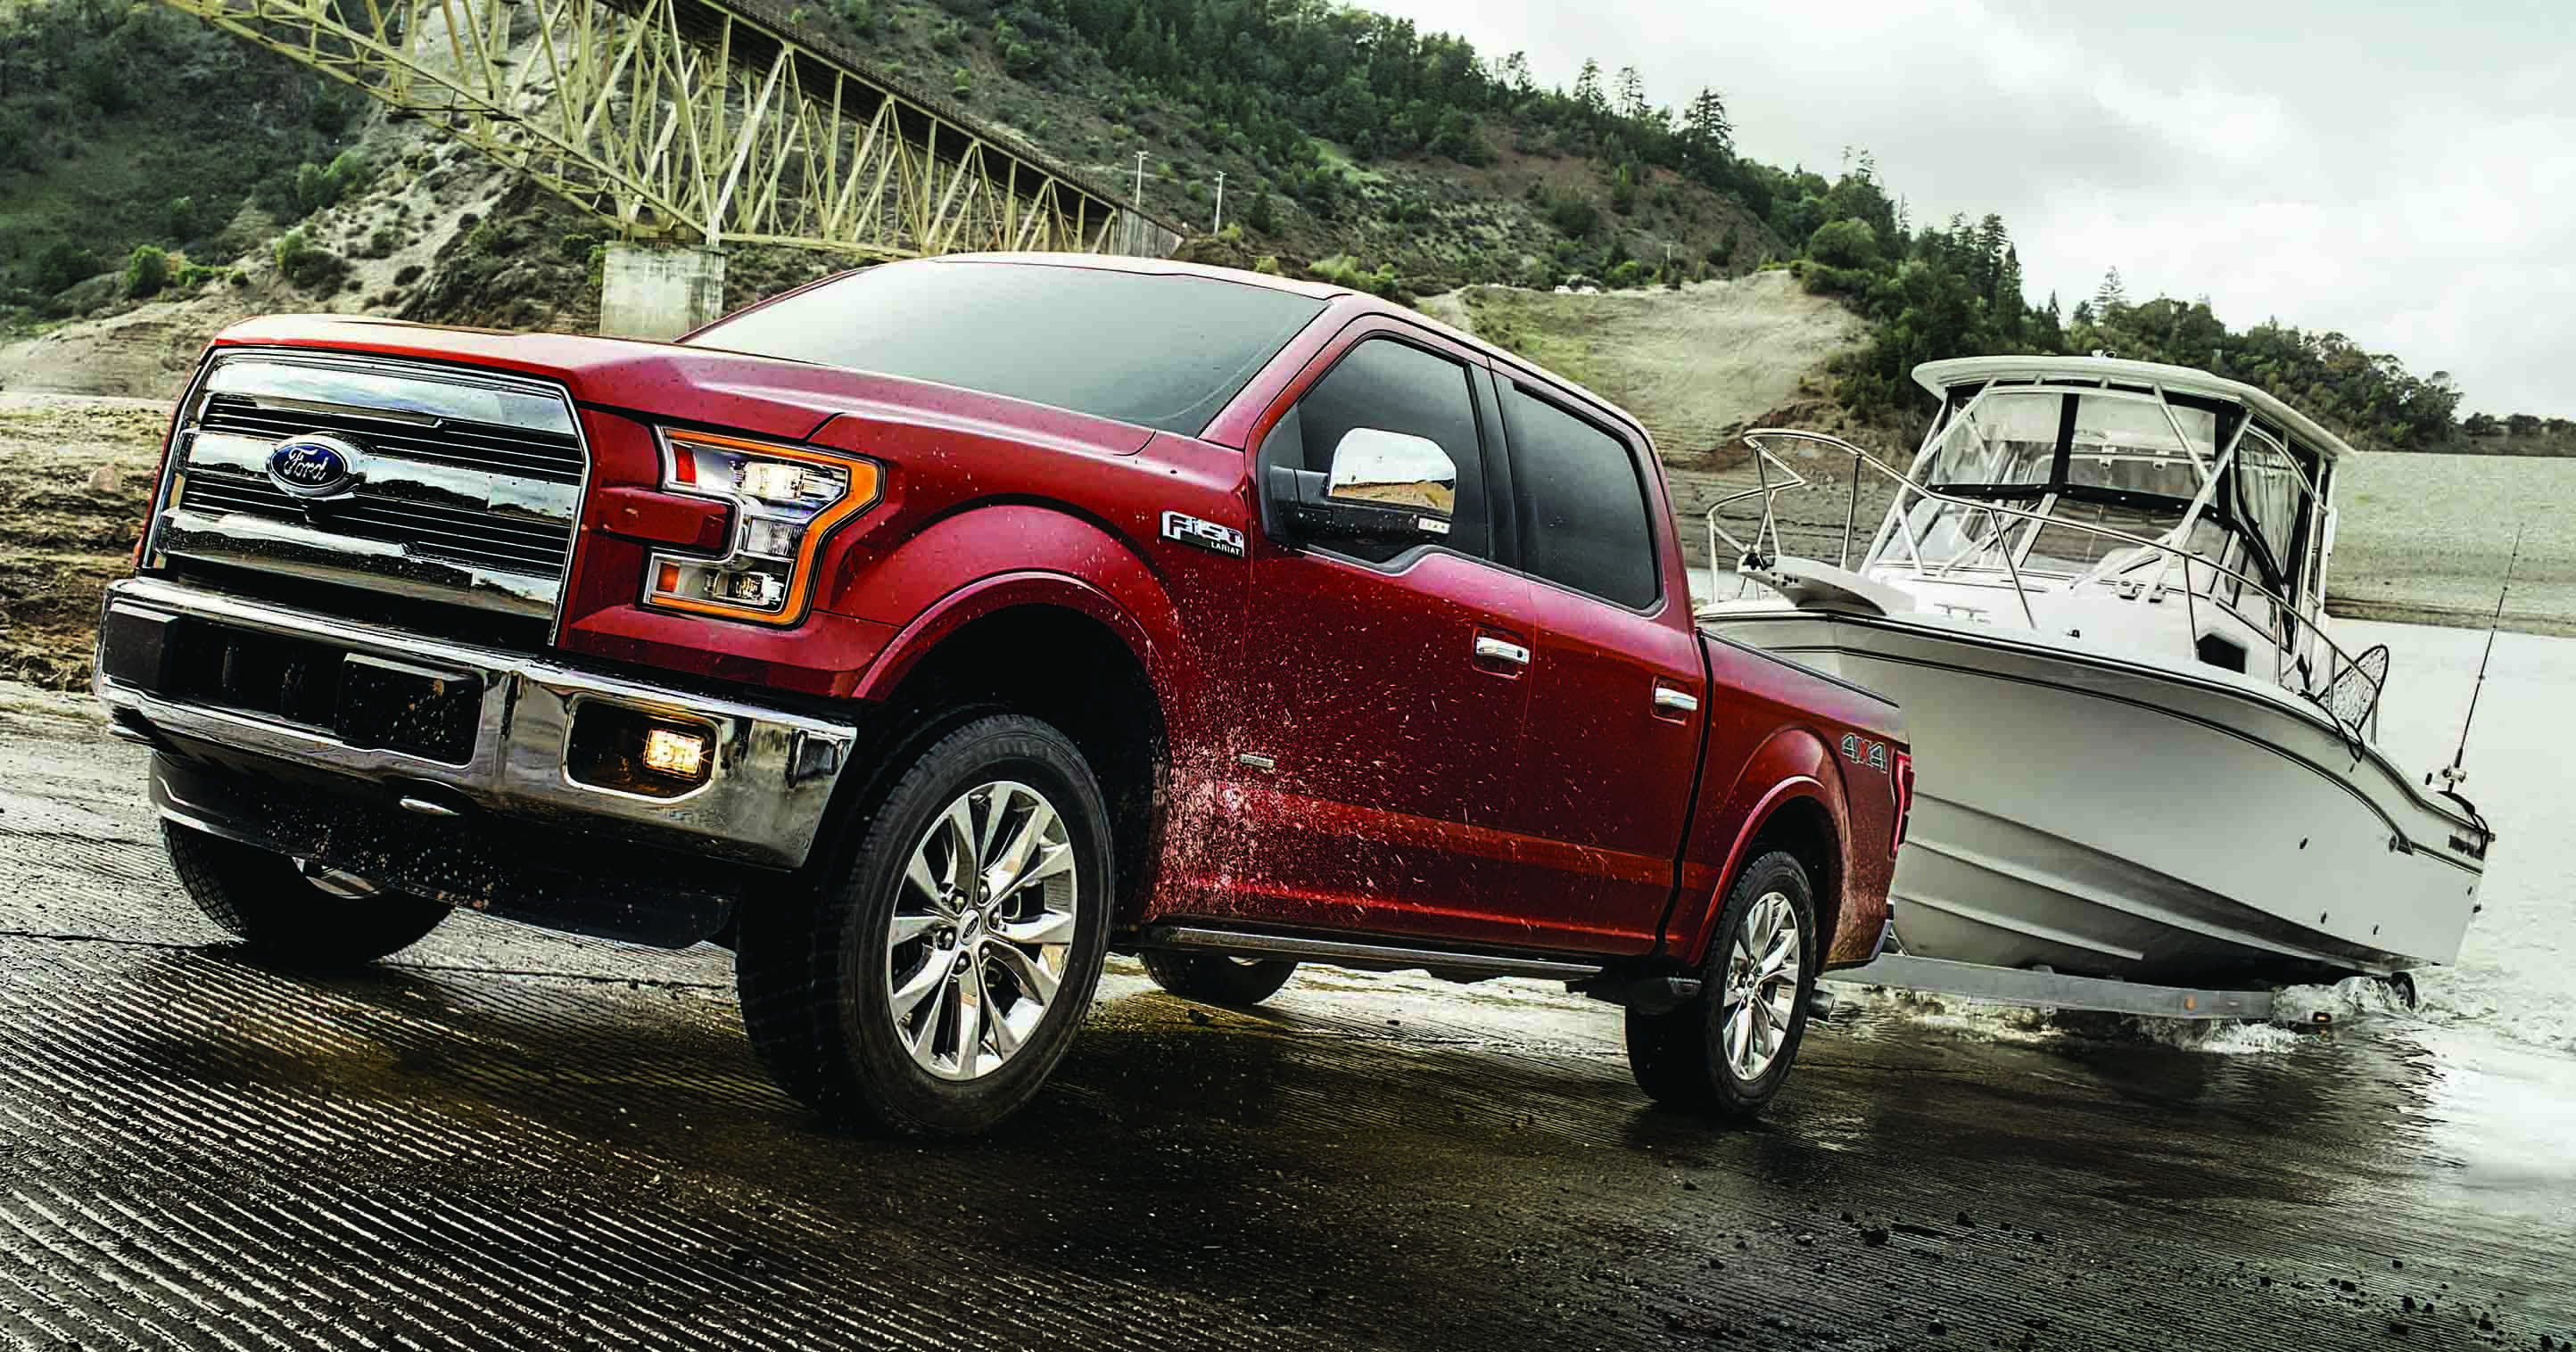 2017 ford f 150 39 s all new 3 5 litre ecoboost v6 engine output officially confirmed 375 hp and. Black Bedroom Furniture Sets. Home Design Ideas